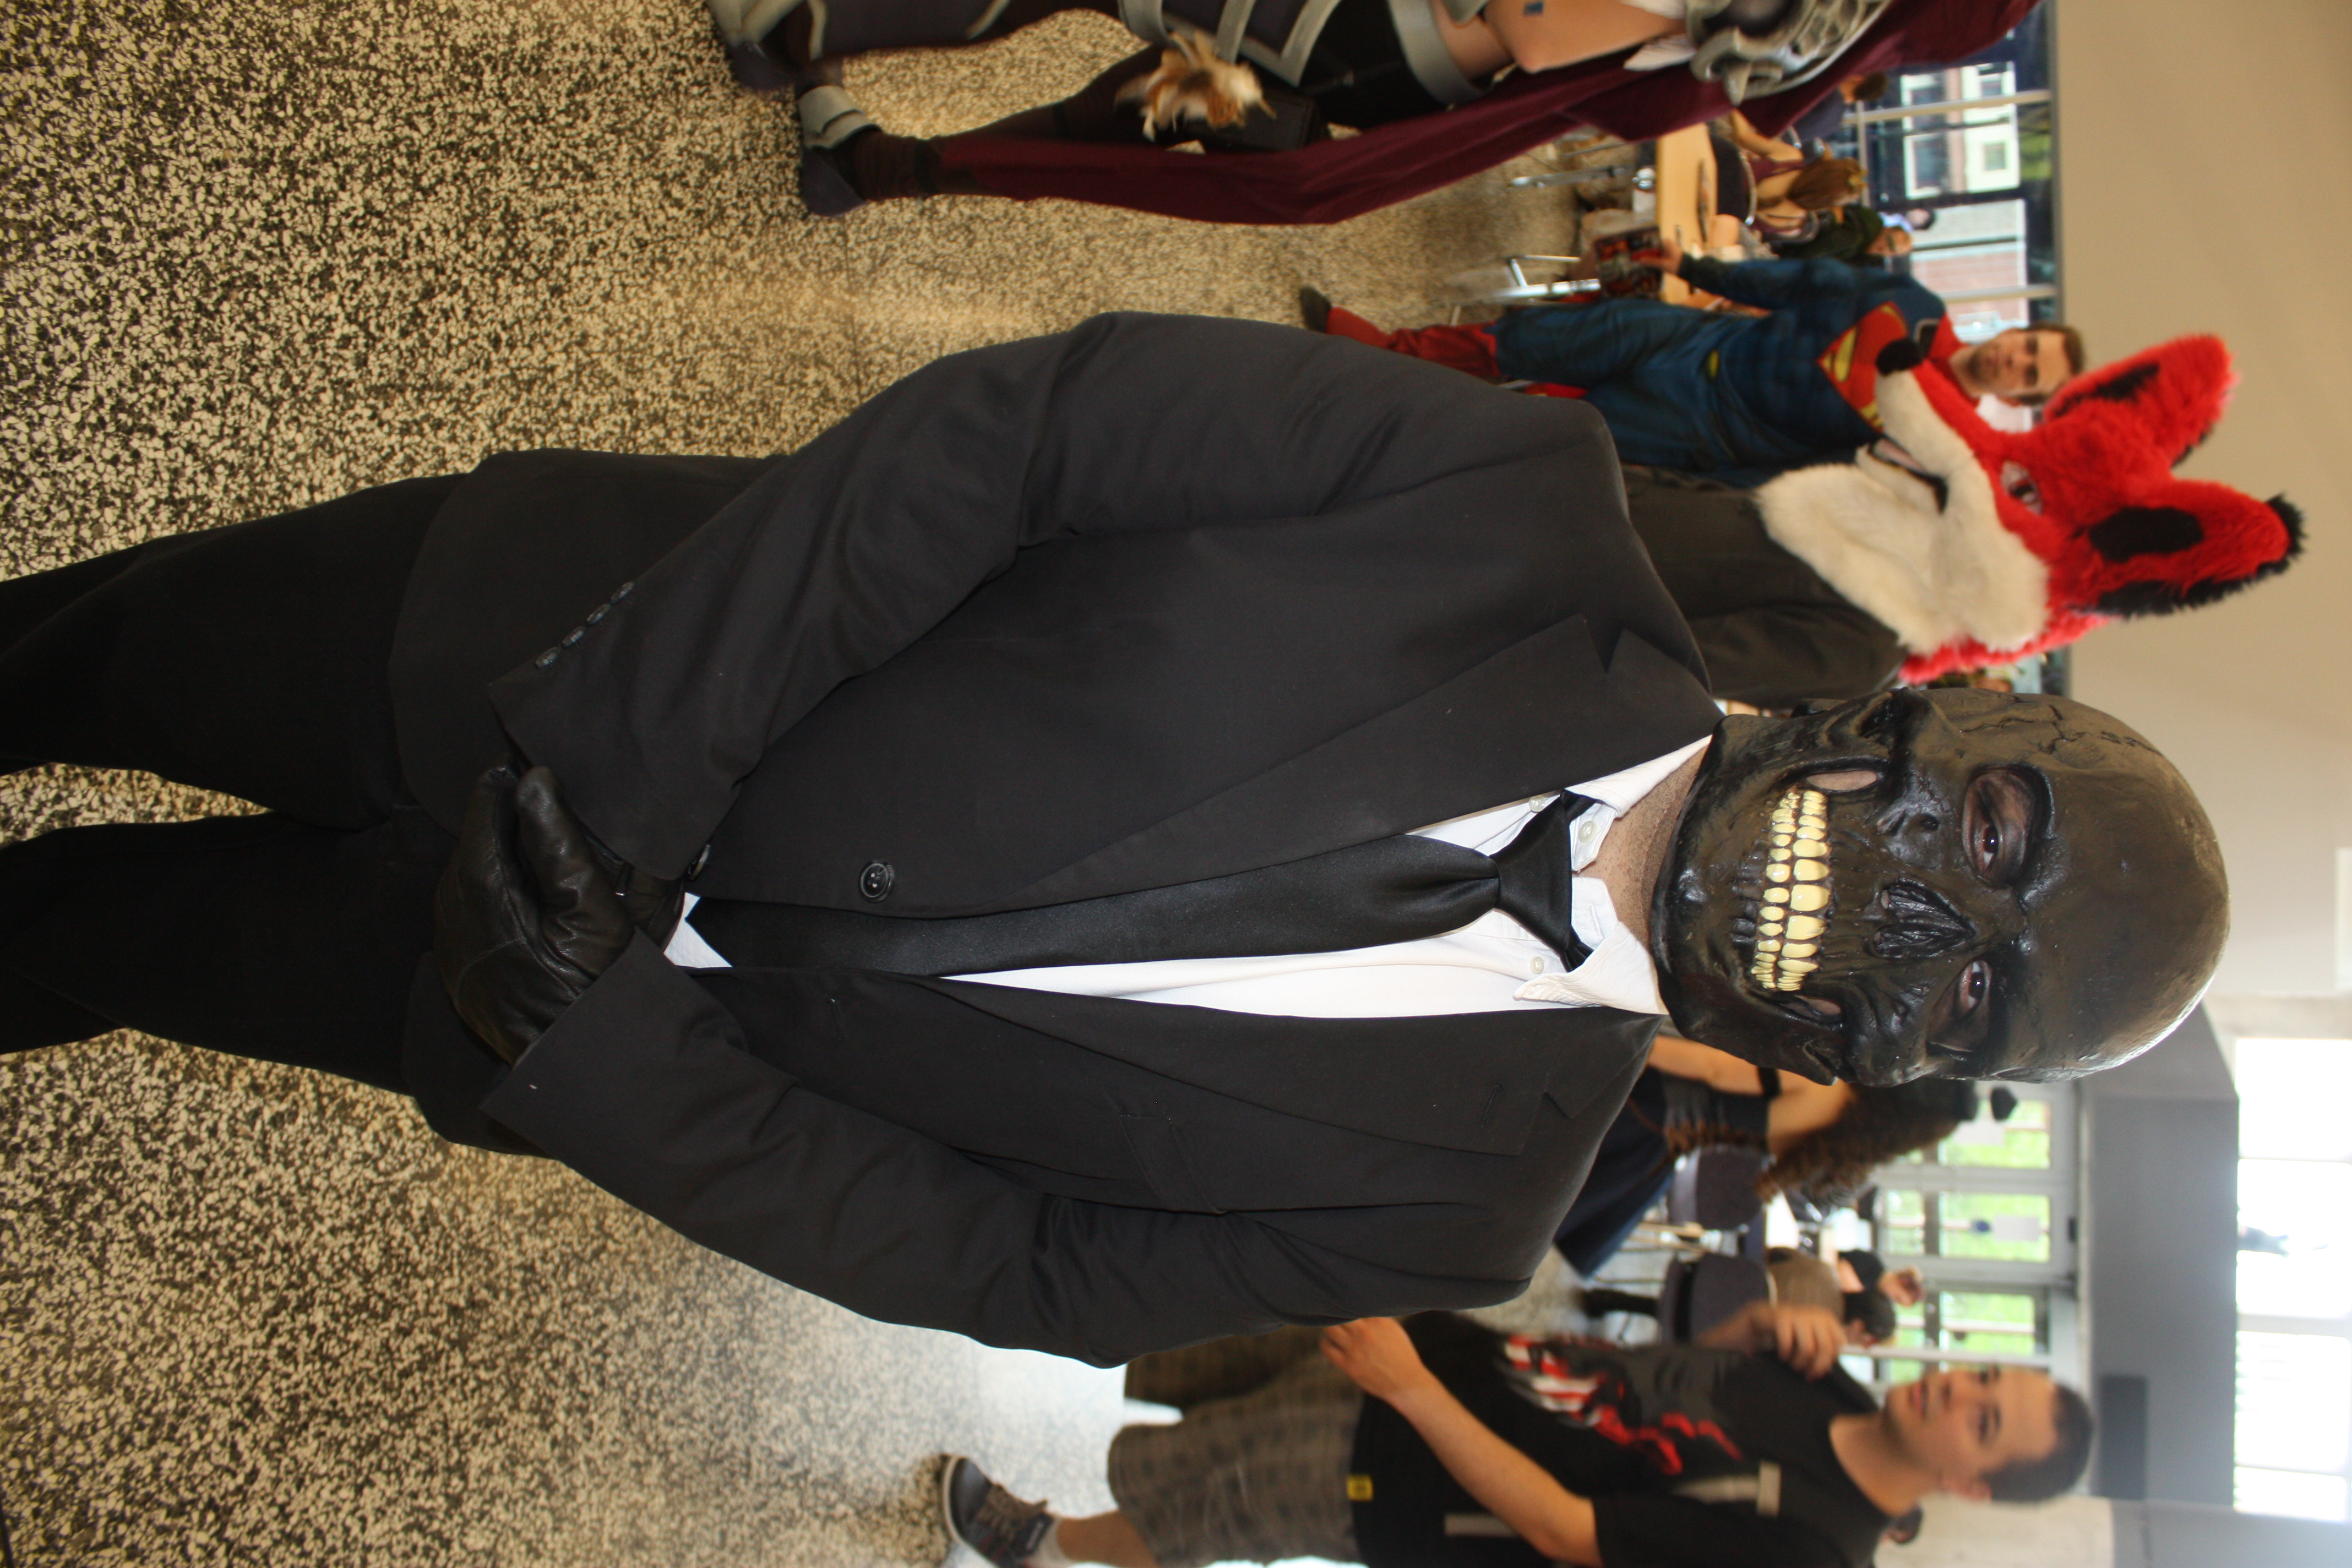 Black Mask (19462840011).jpg Cosplay one day two of Montreal Comiccon 2015. Date 4 July 2015, 14:38 Source Montreal Comiccon 2015: Black Mask Author